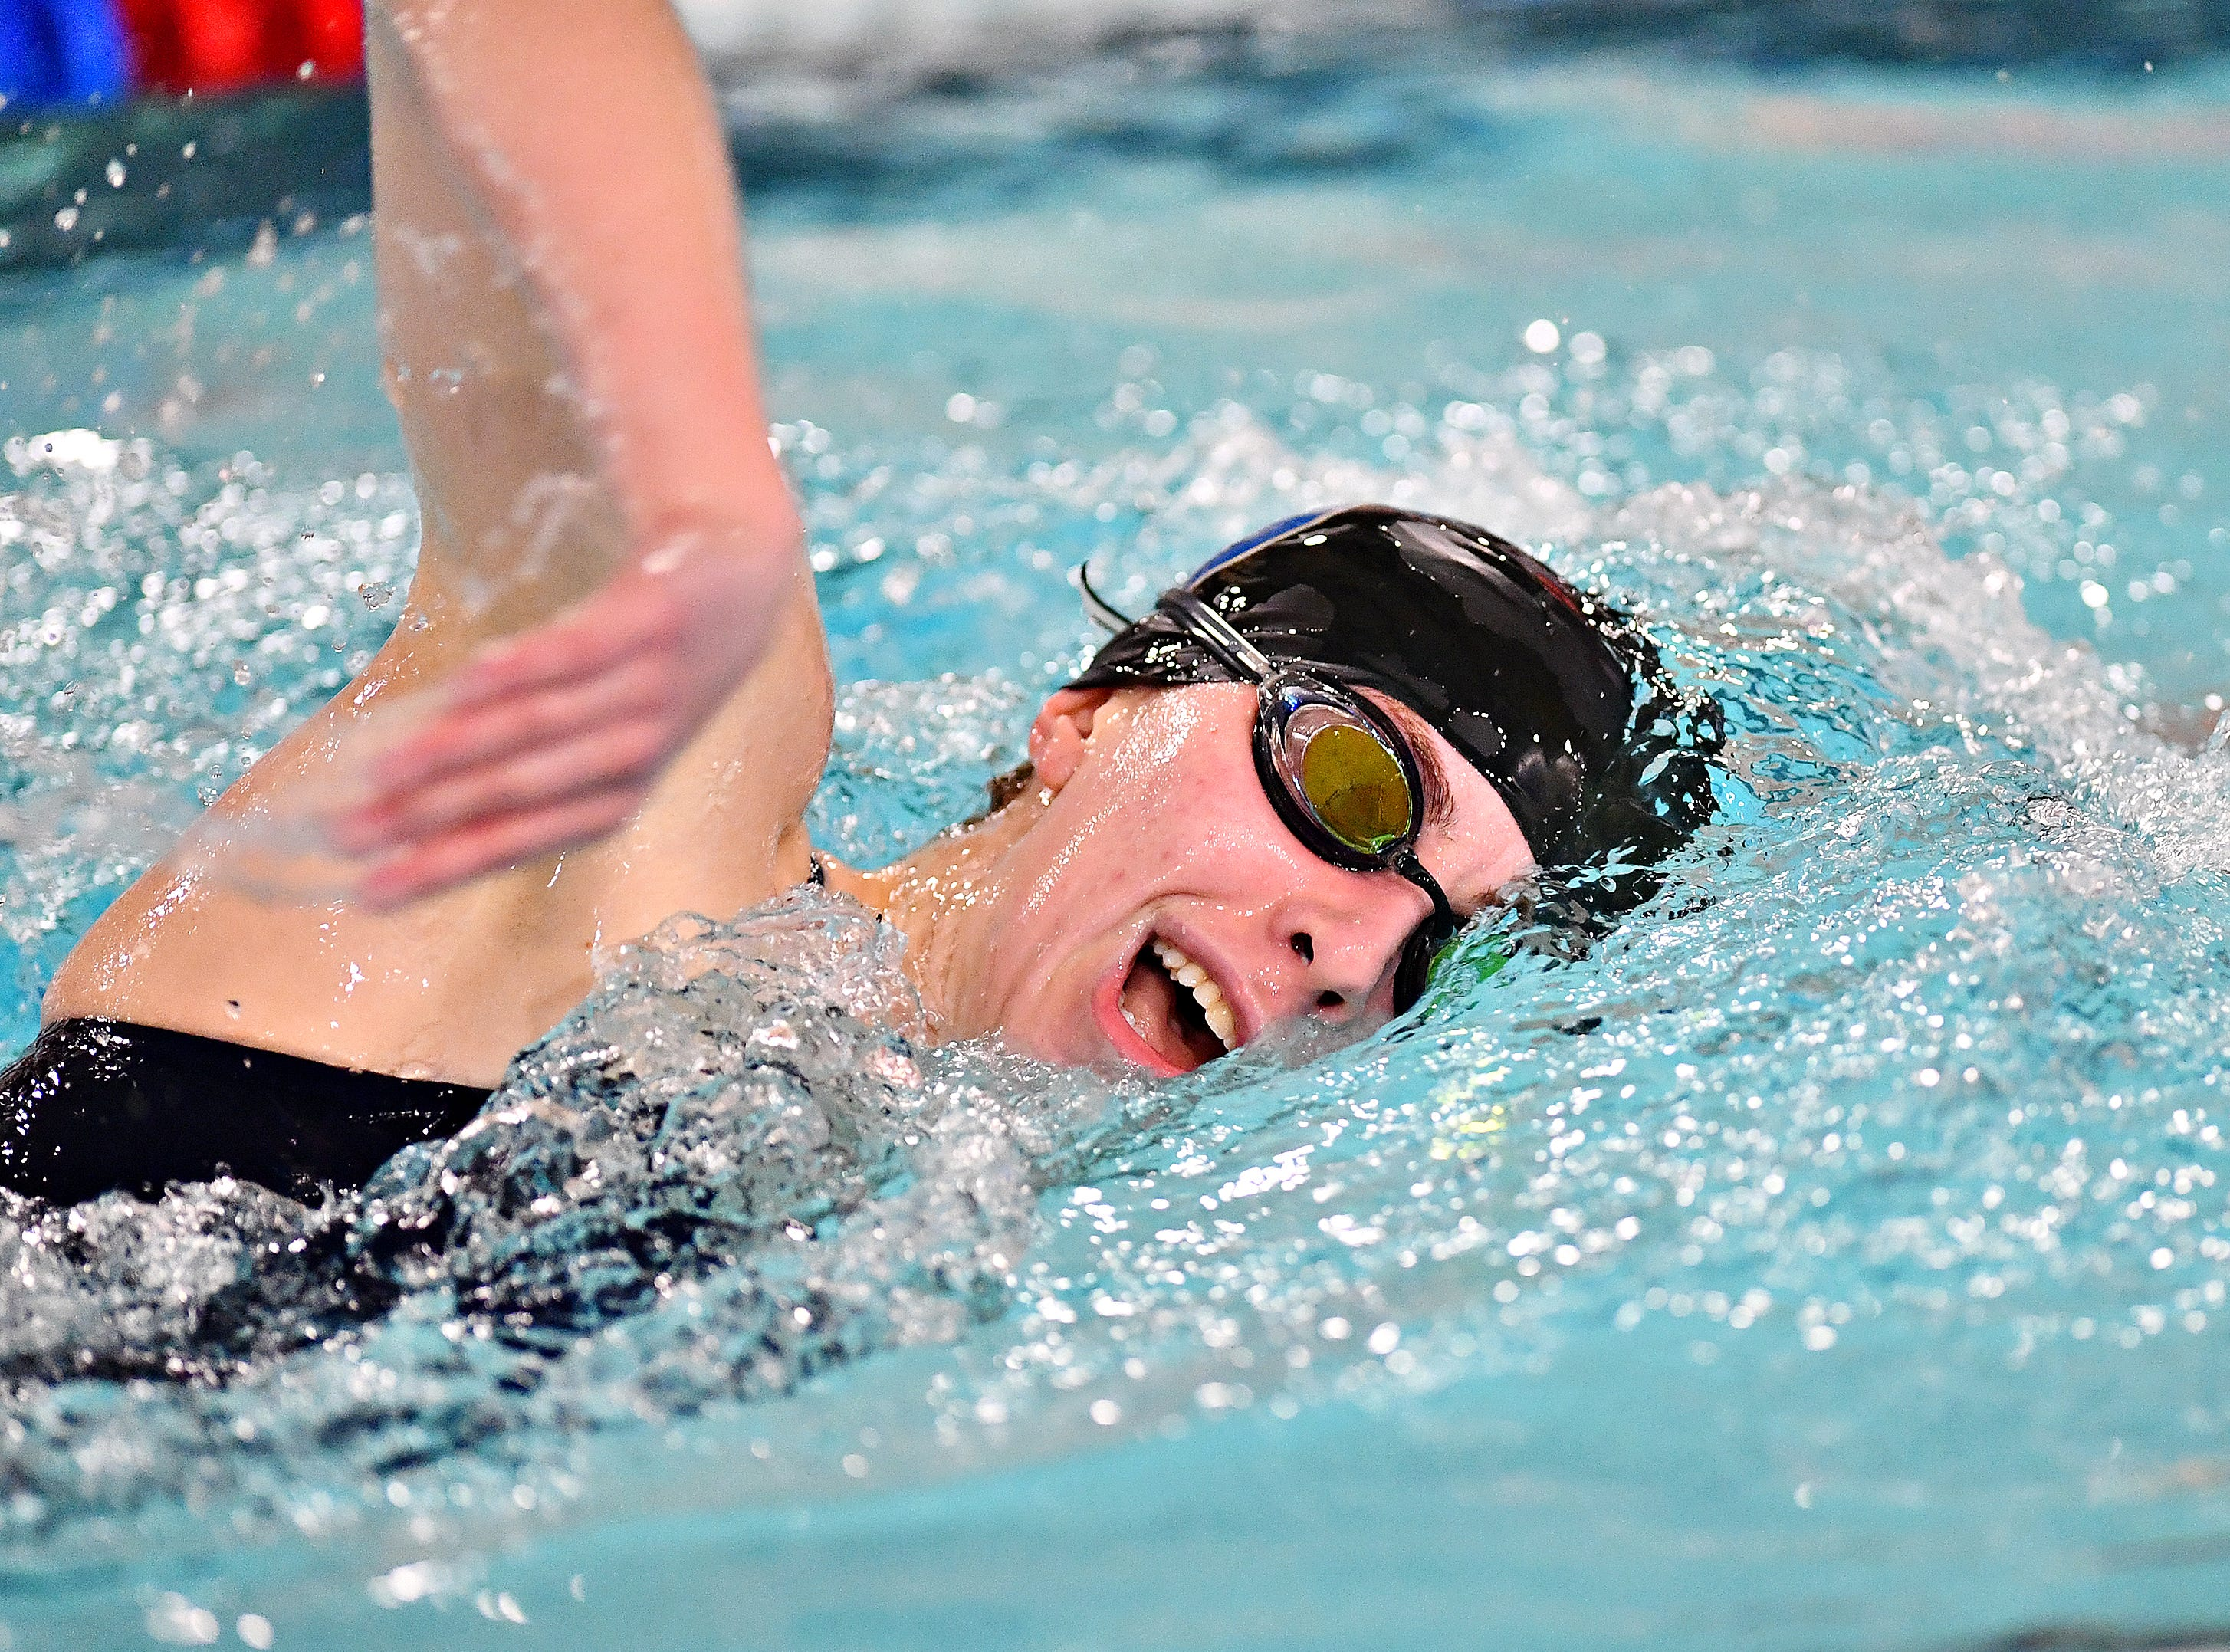 Dallastown's Kathryn Deitch competes in the 500 Yard Freestyle event during swimming action against Central York at Dallastown Area High School in York Township, Thursday, Jan. 10, 2019. Dawn J. Sagert photo